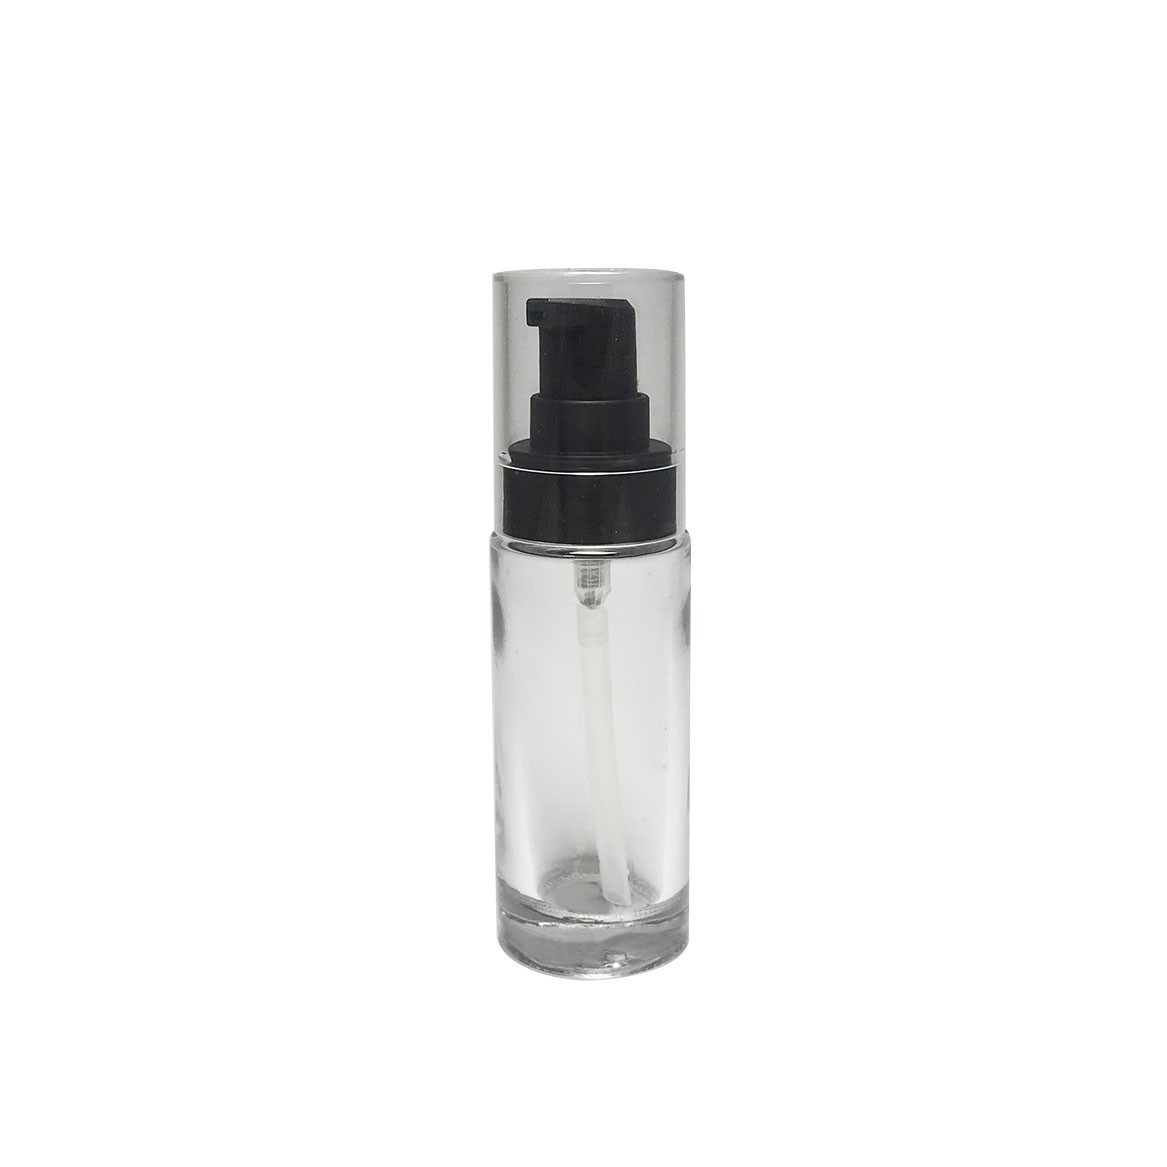 Elegance packaging empty 35ml cylinder glass bottle black lotion pump transparent cap 20/4100 neck size